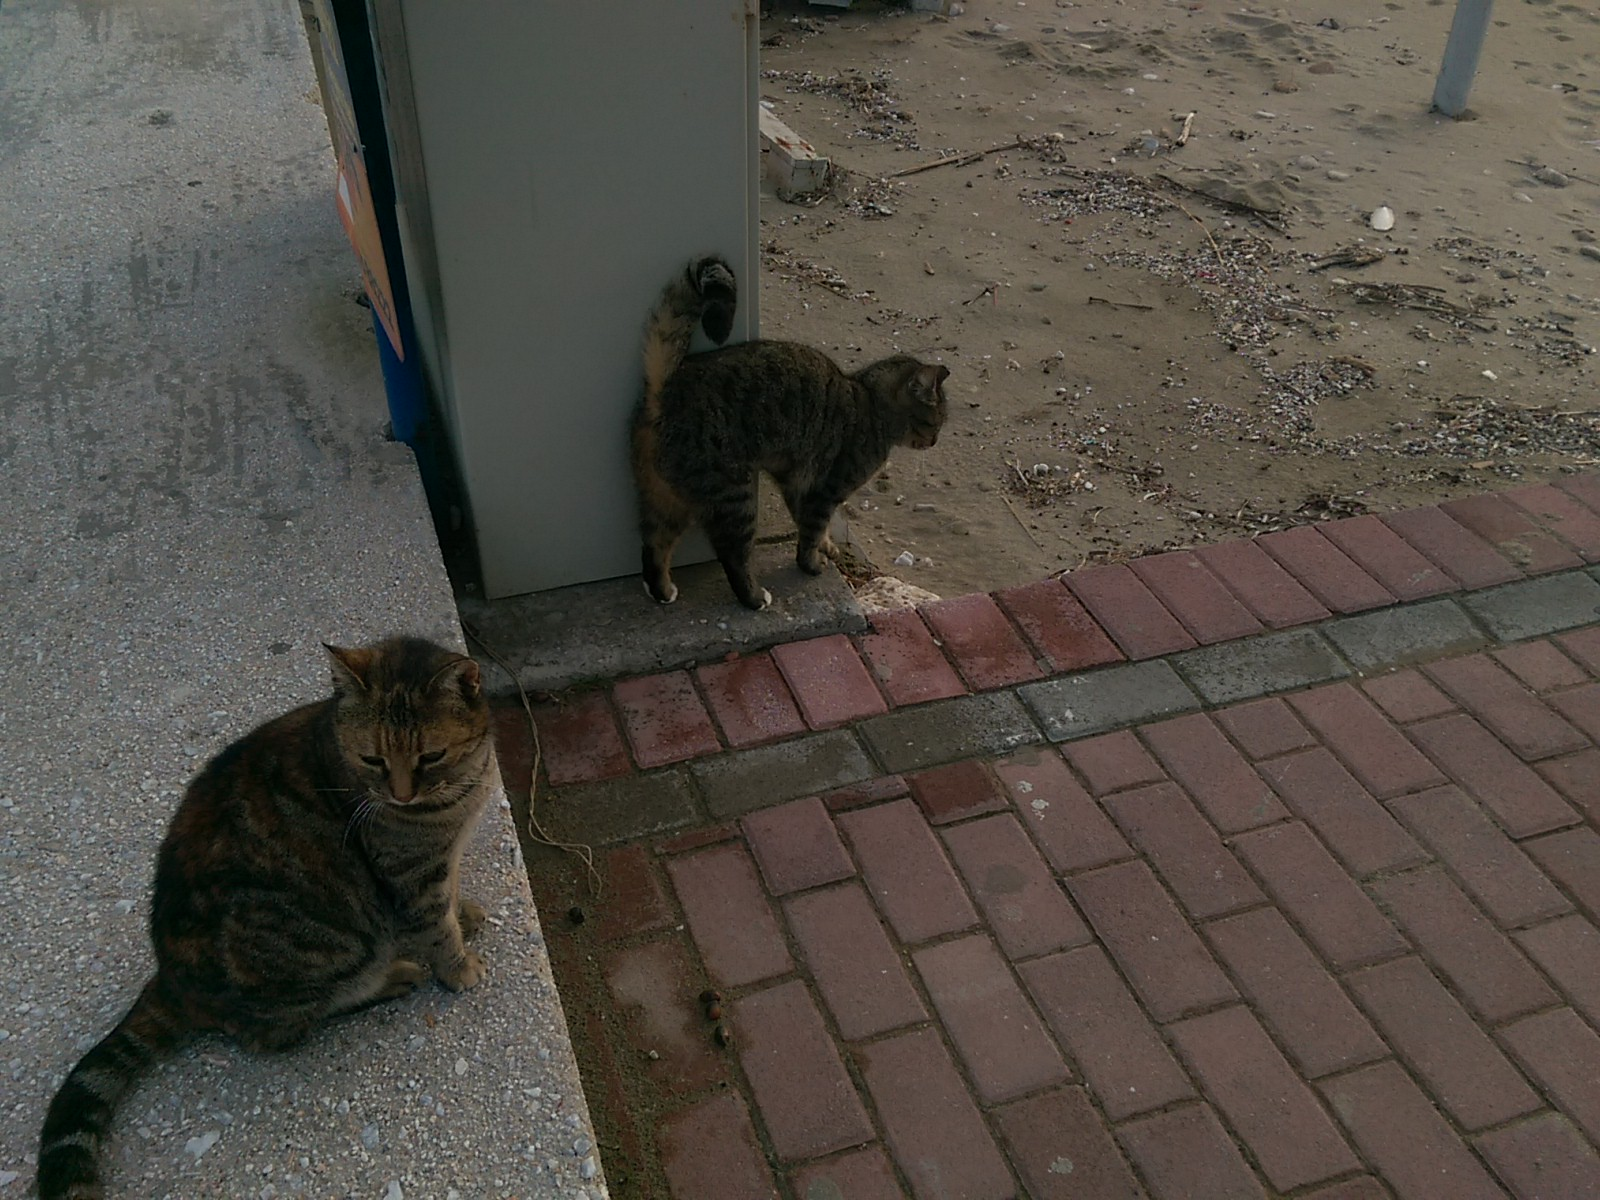 Two tabby cats hanging out on sand and pavement